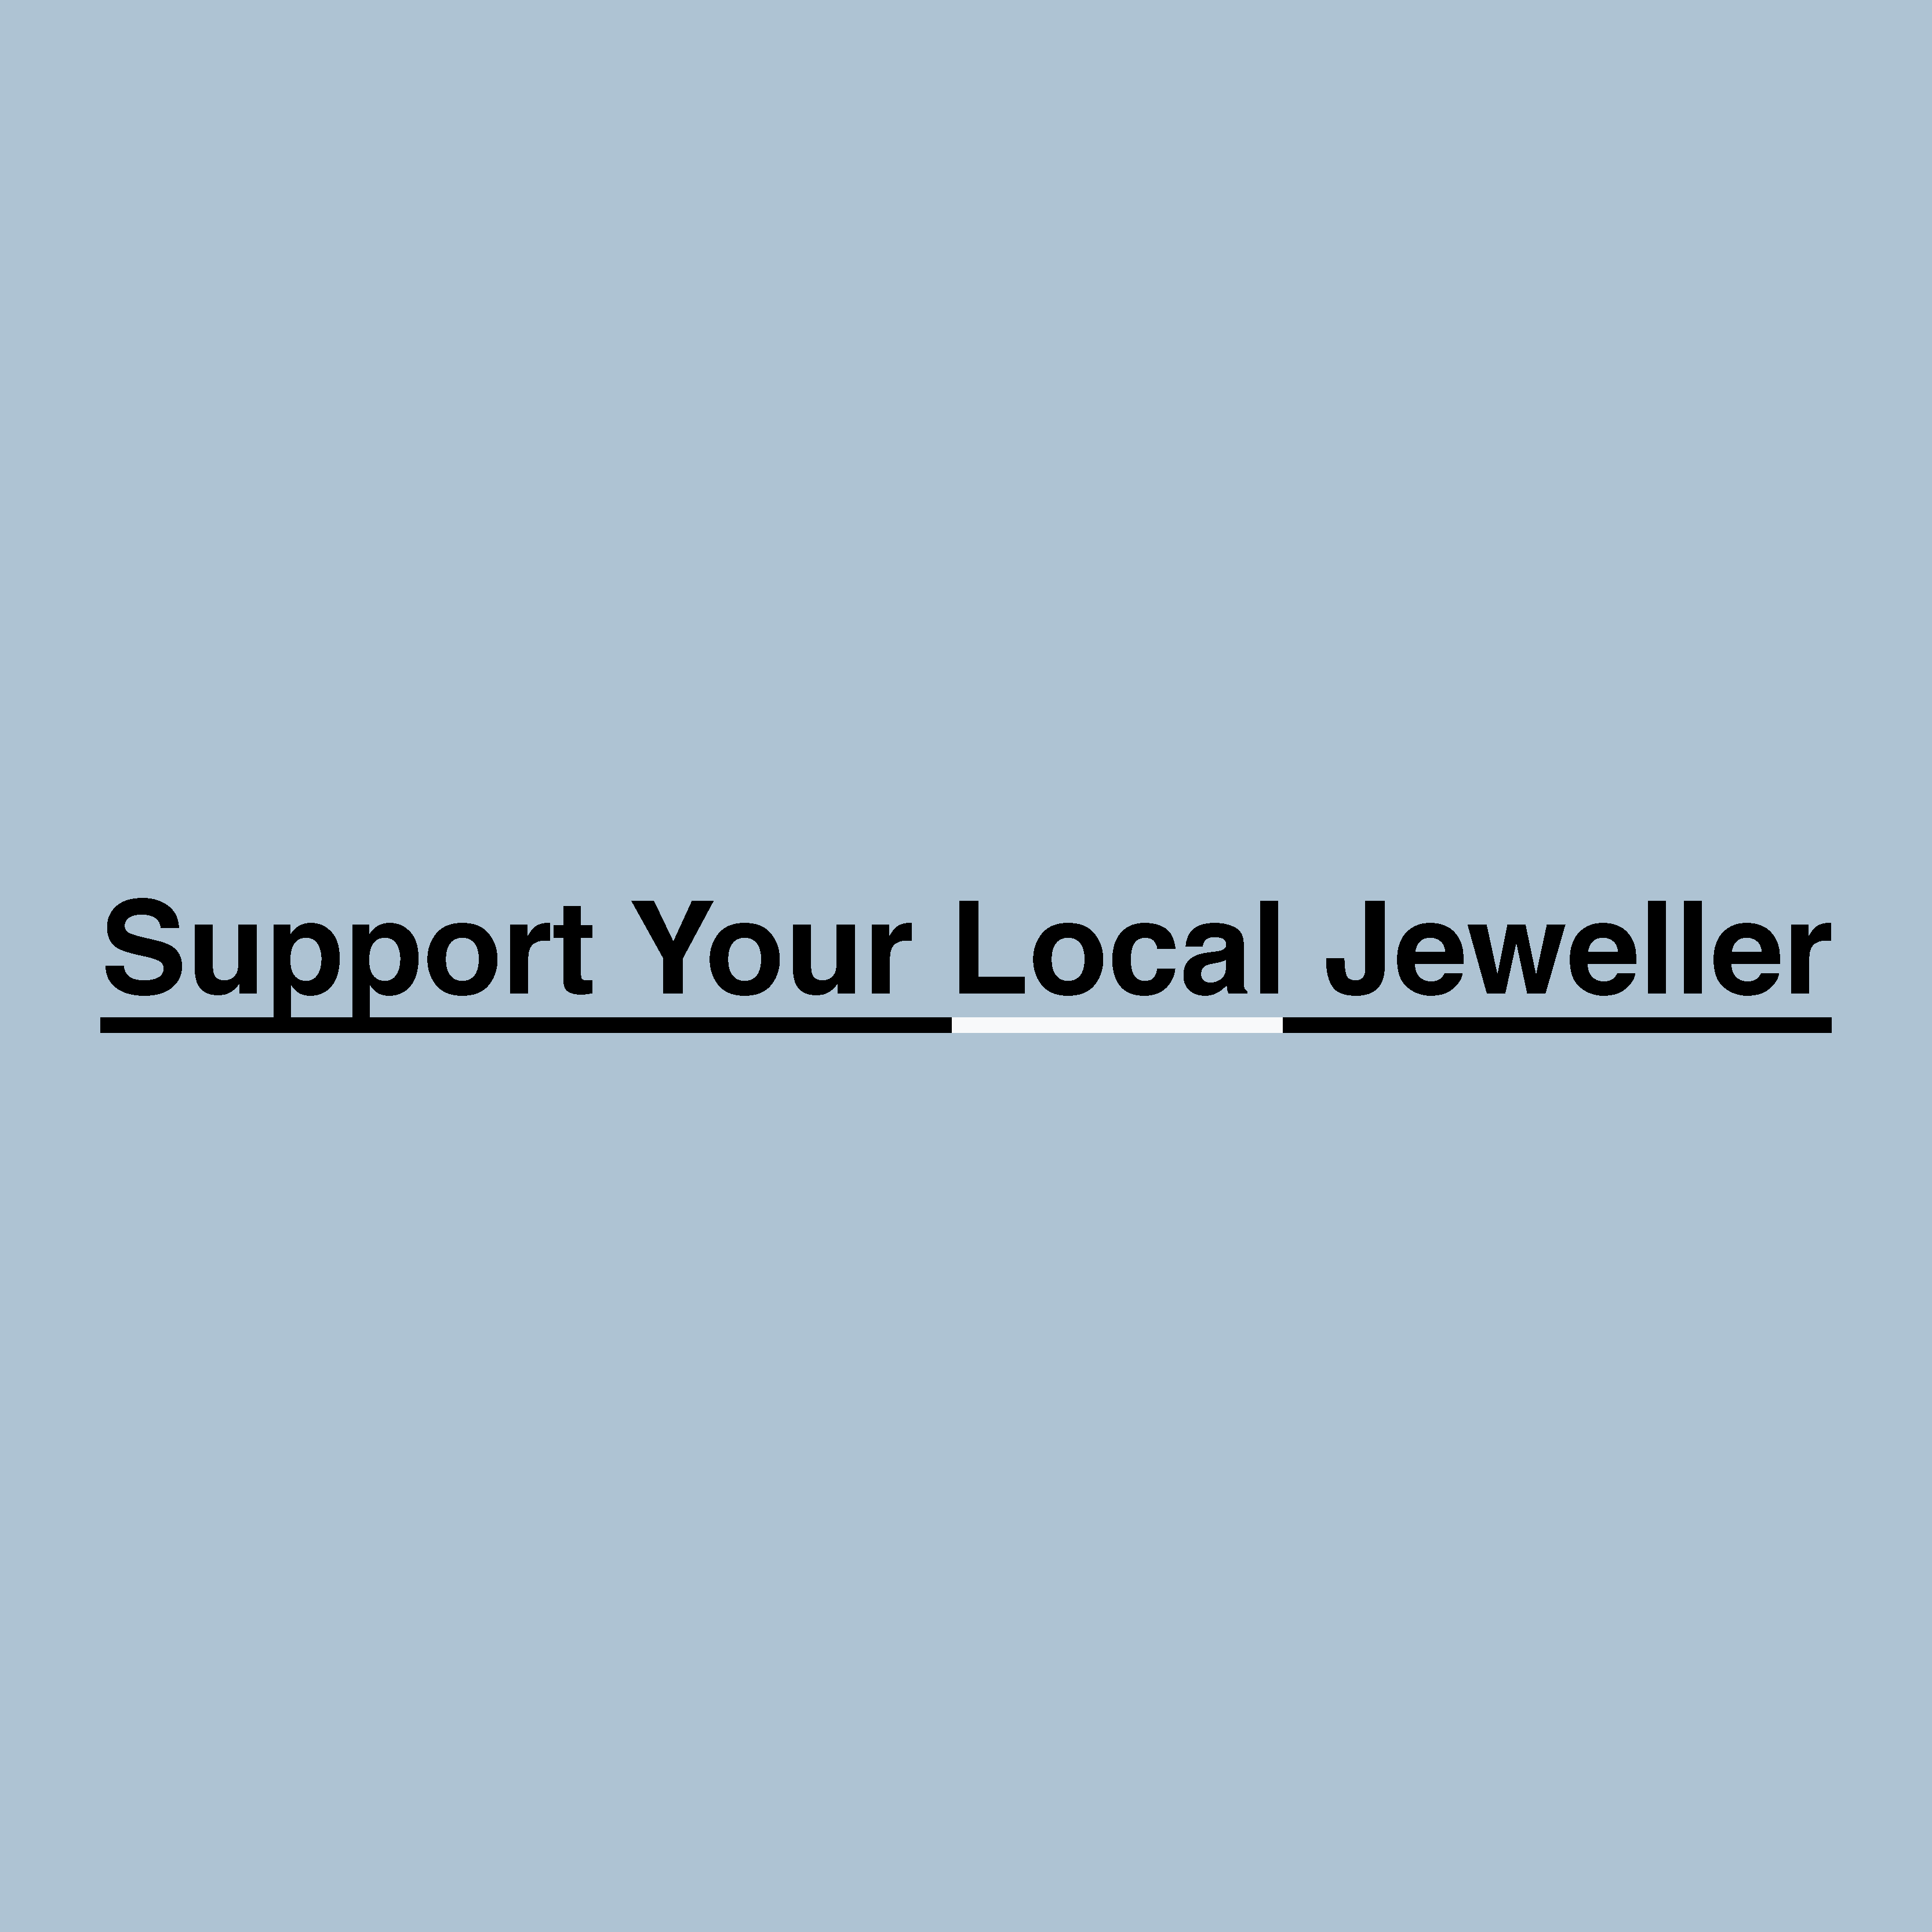 Support Your Local Jeweller